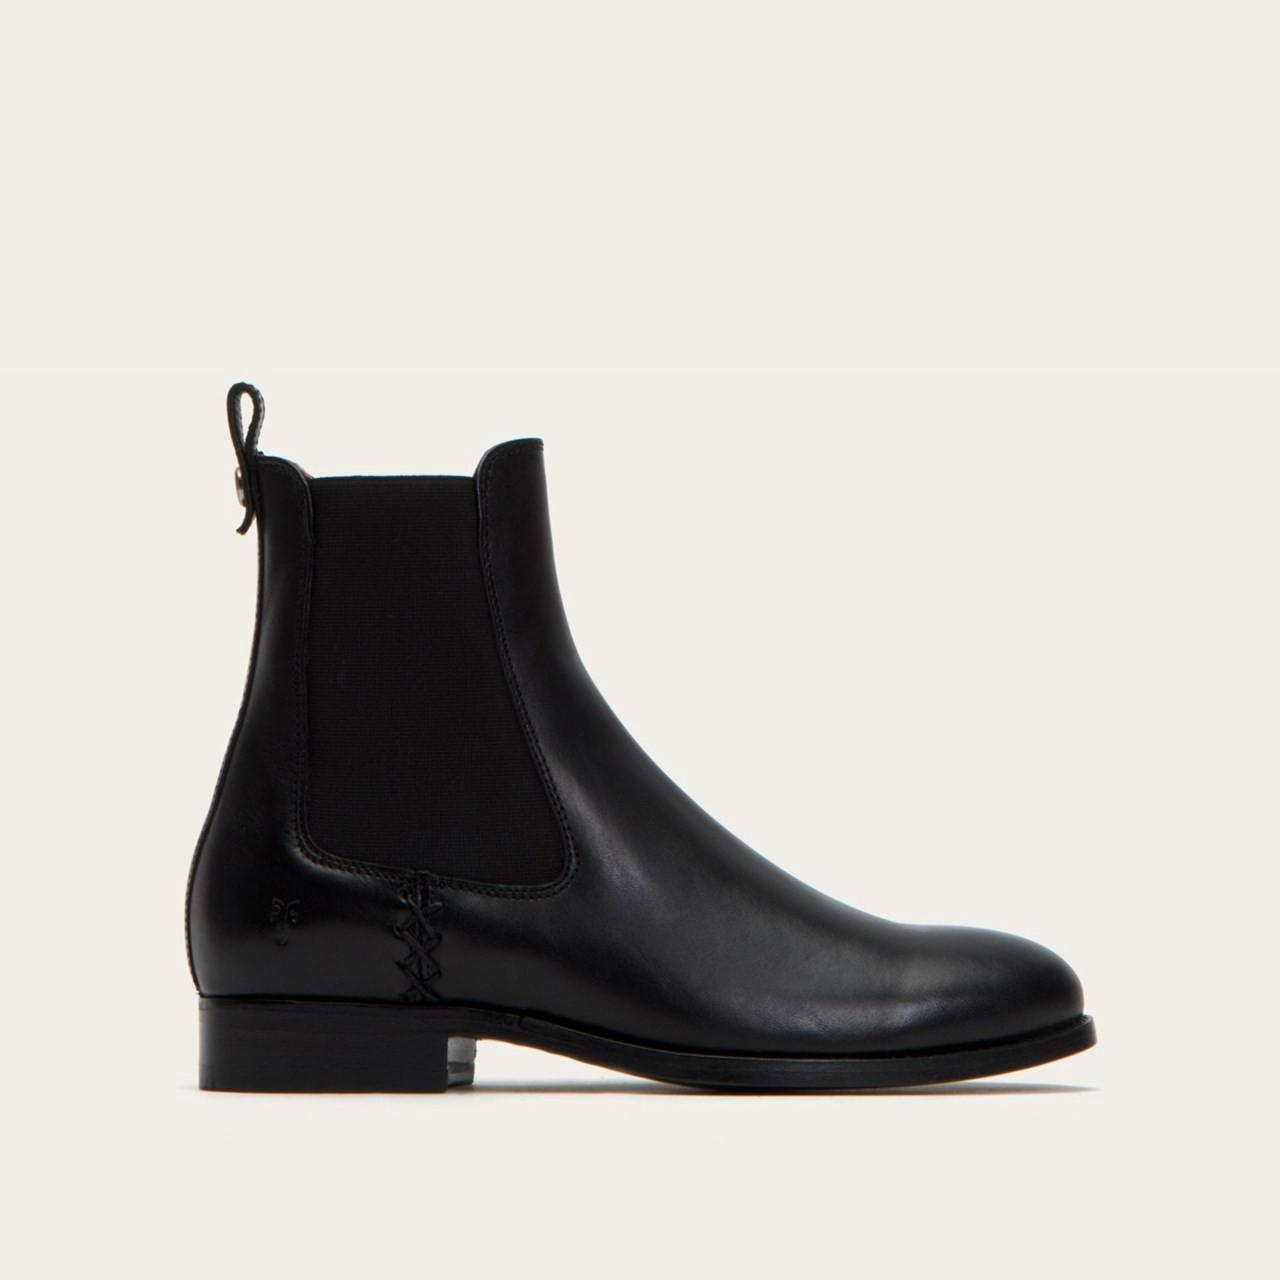 88cc4288cac Melissa Chelsea Boots in Black